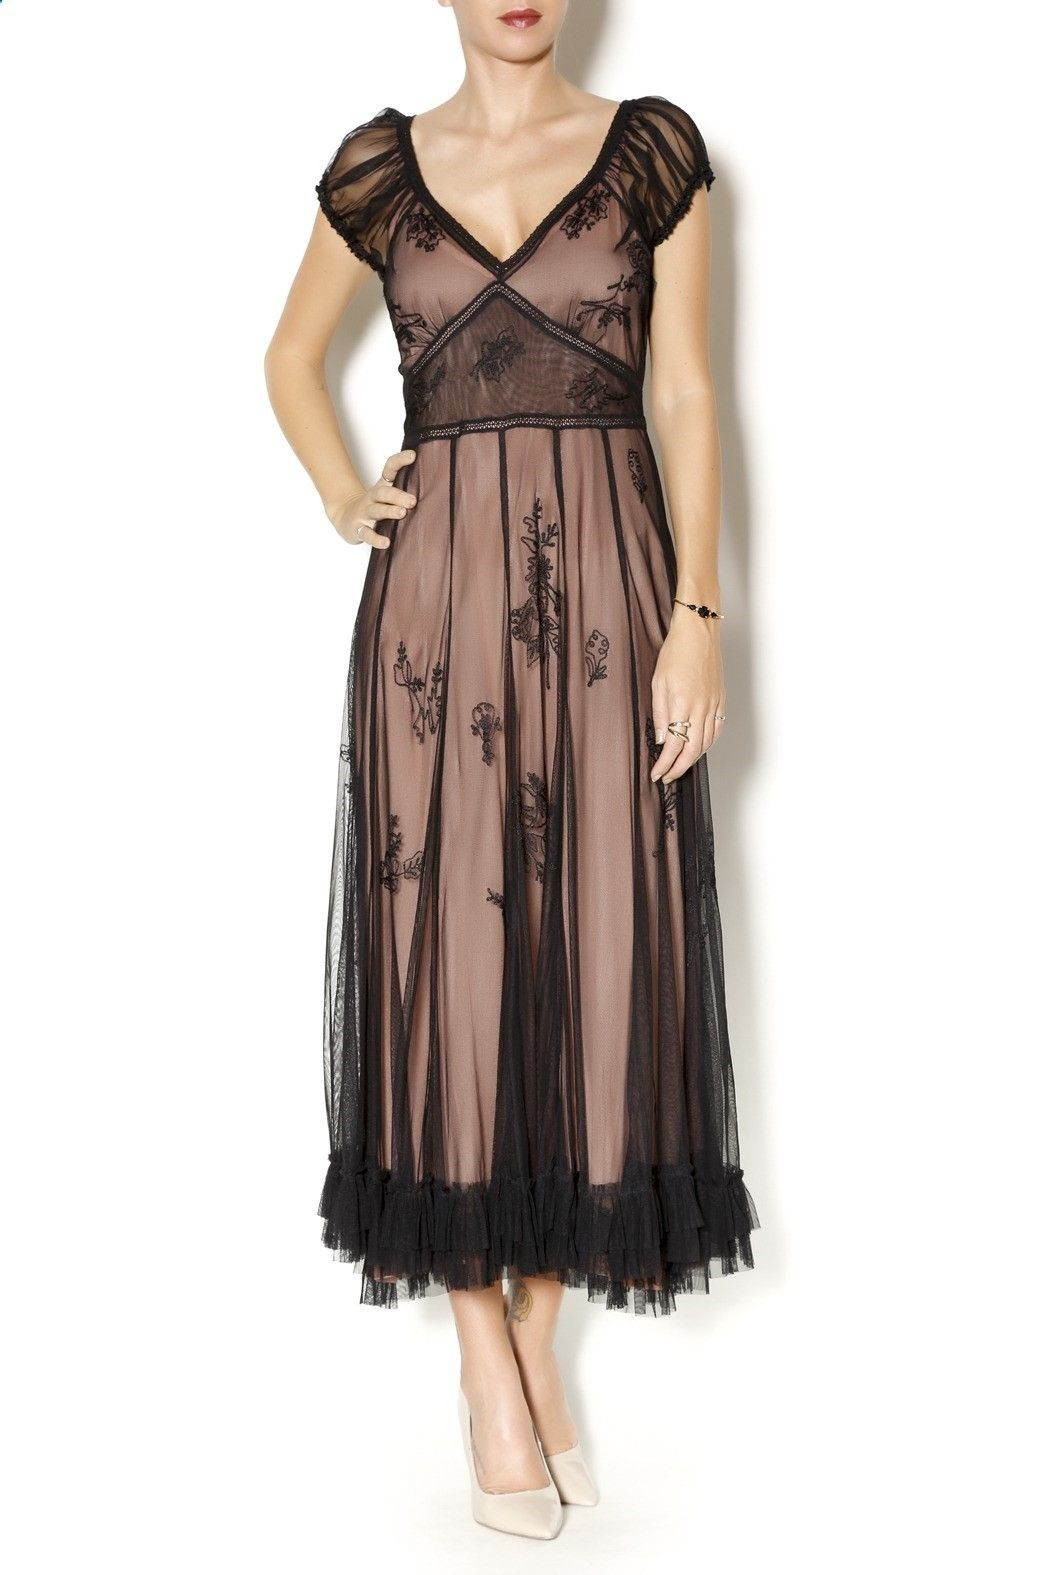 Clothes for romantic night clothes for romantic night this